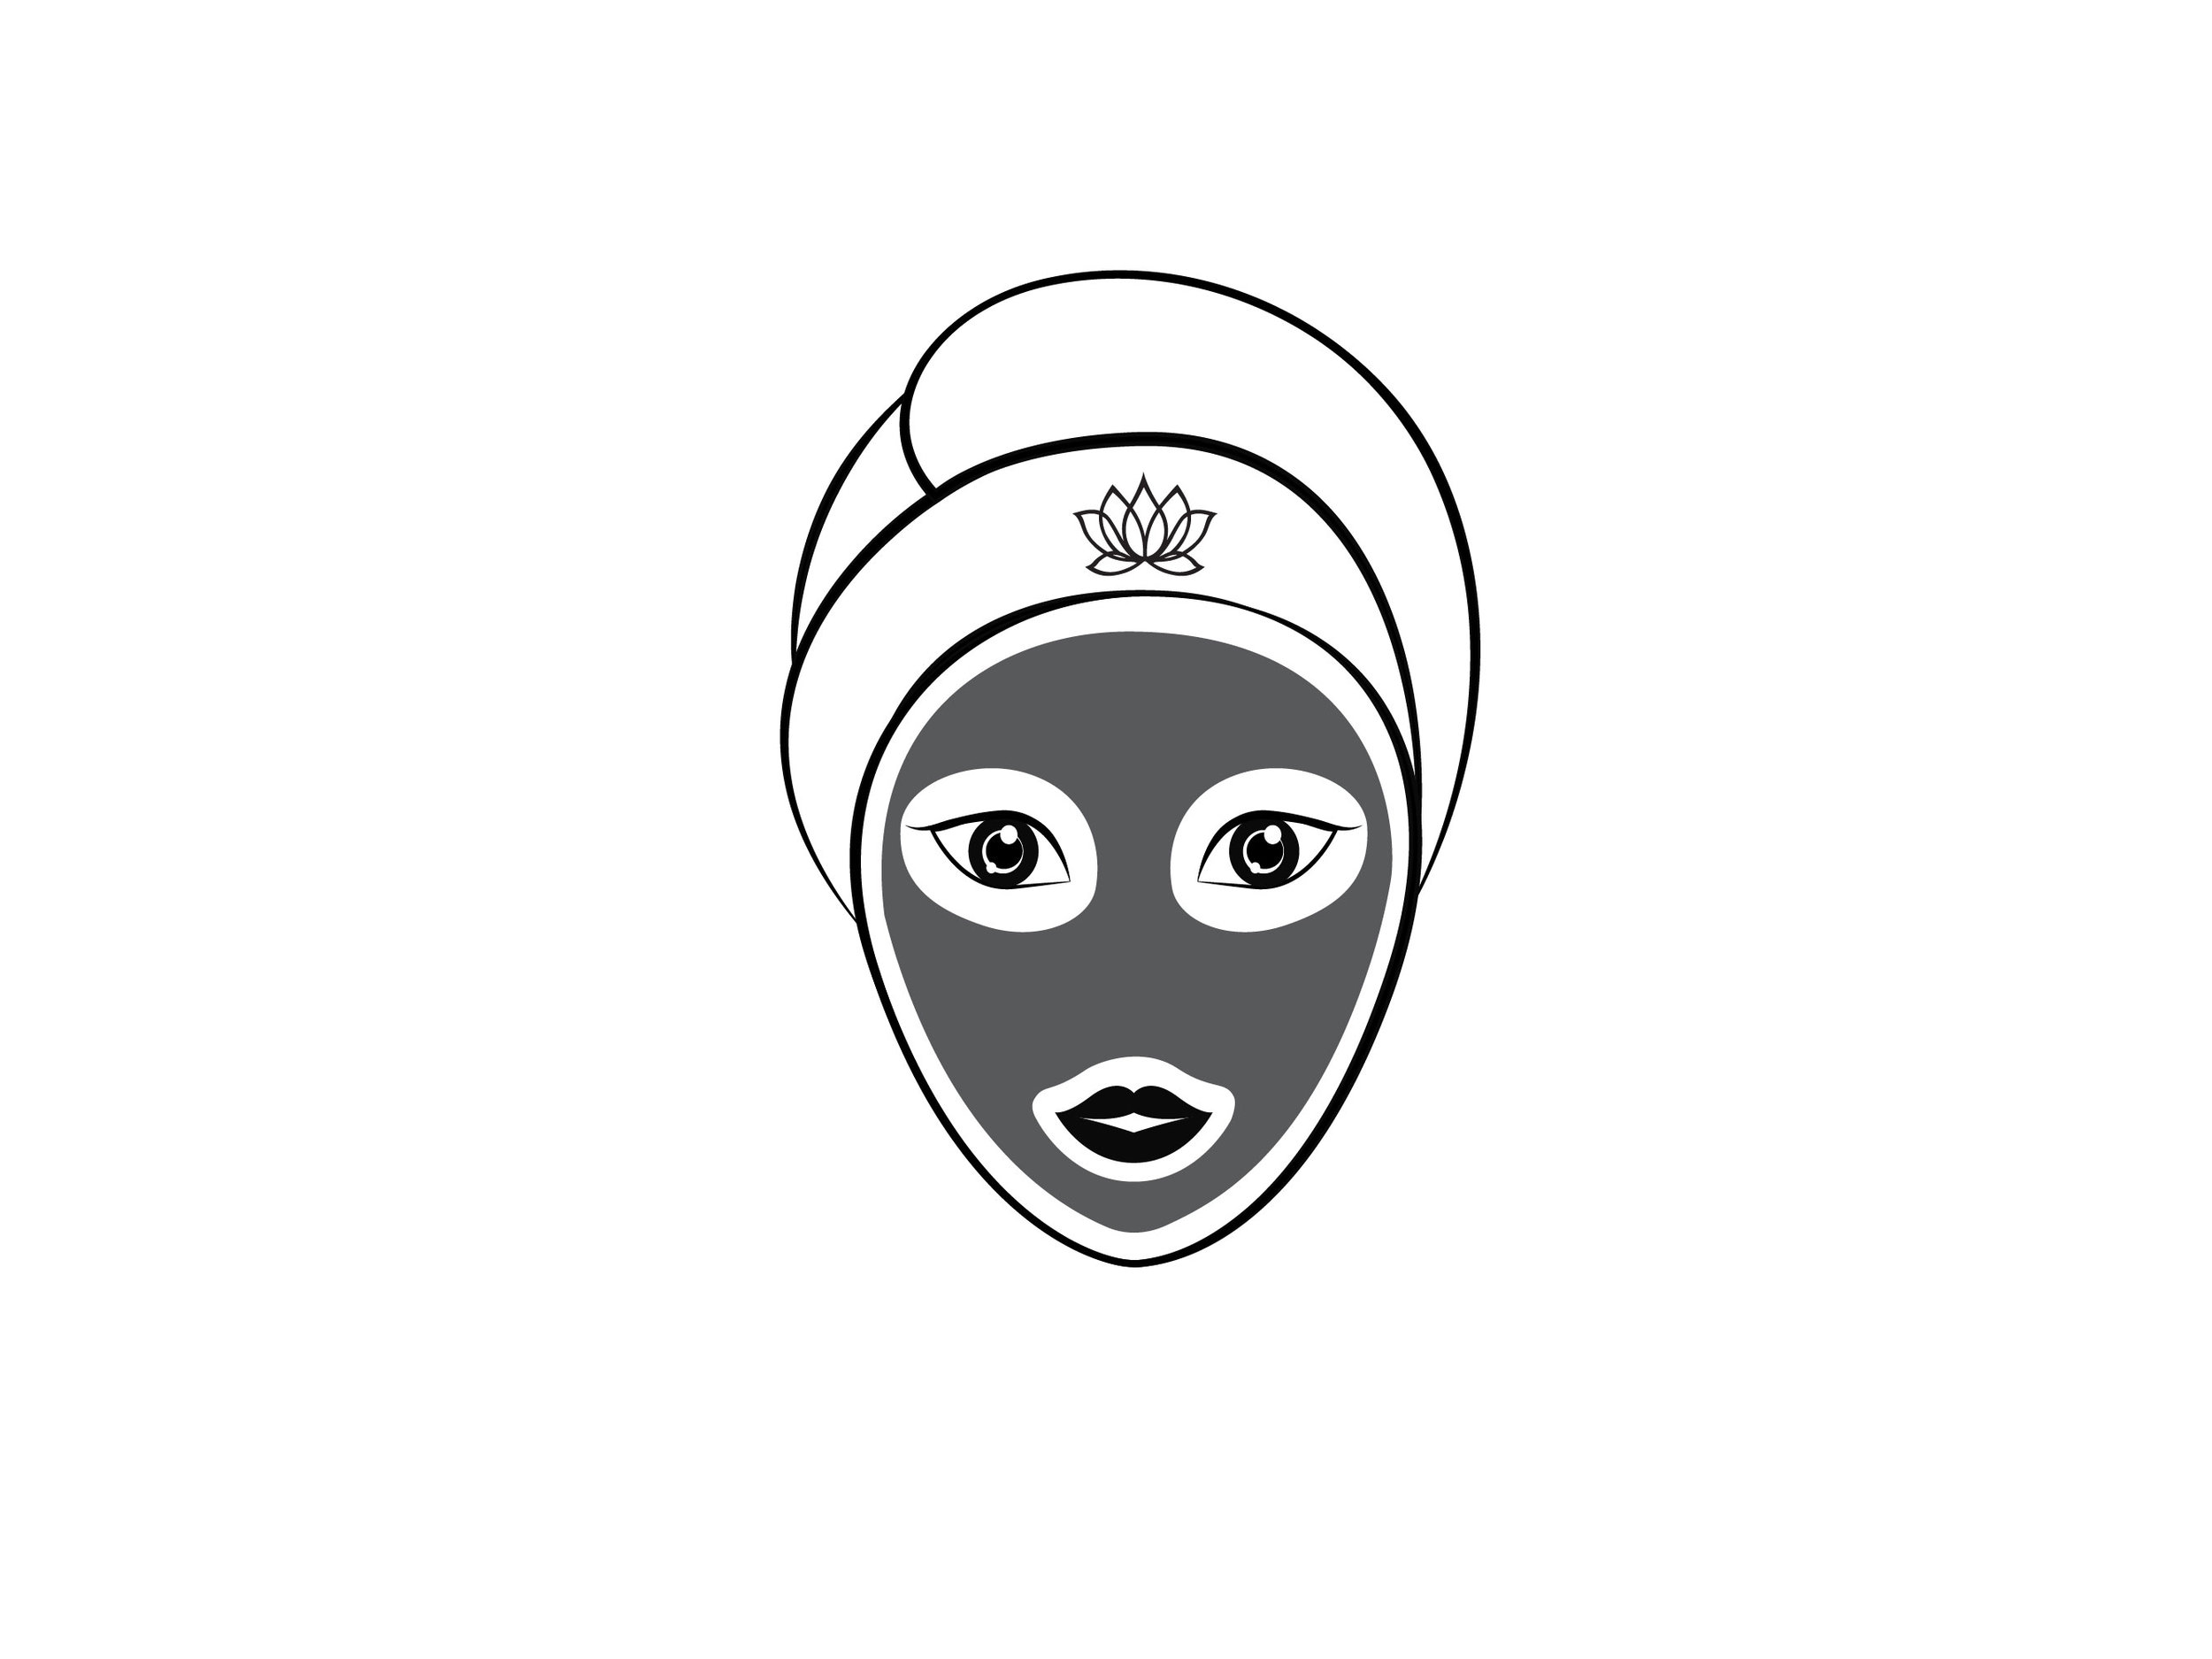 dprskn-claymask-facemask-icon-01.jpg